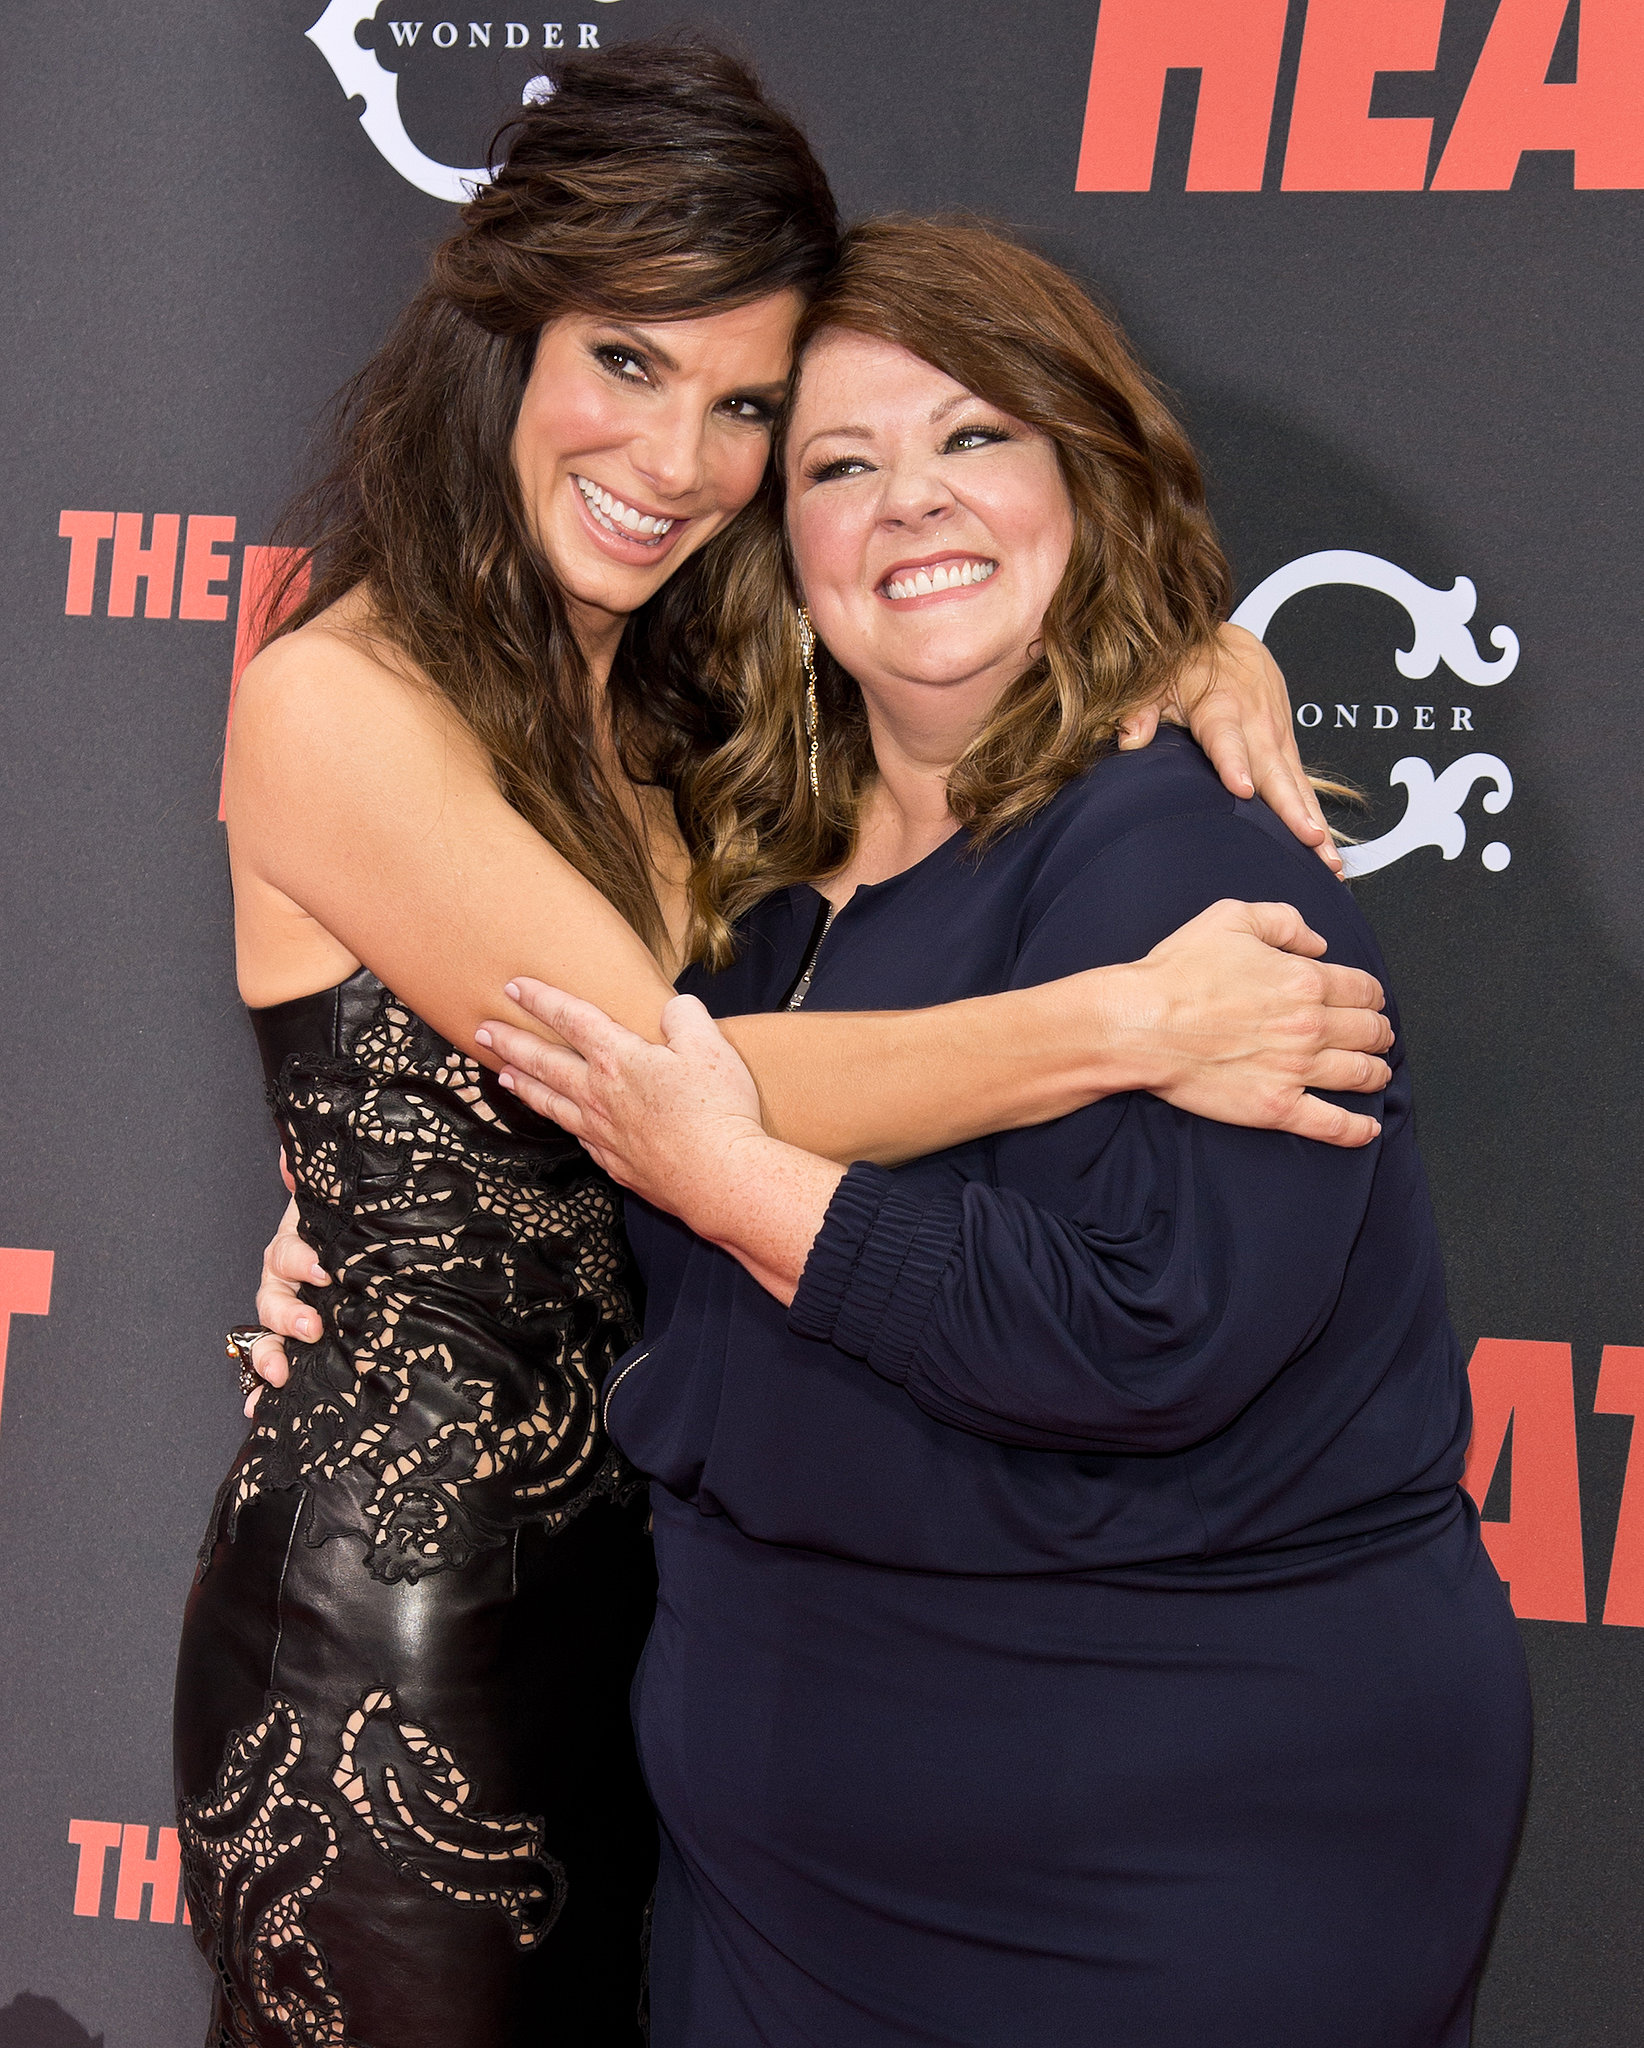 Sandra Bullock and Melissa McCarthy were brought together ...